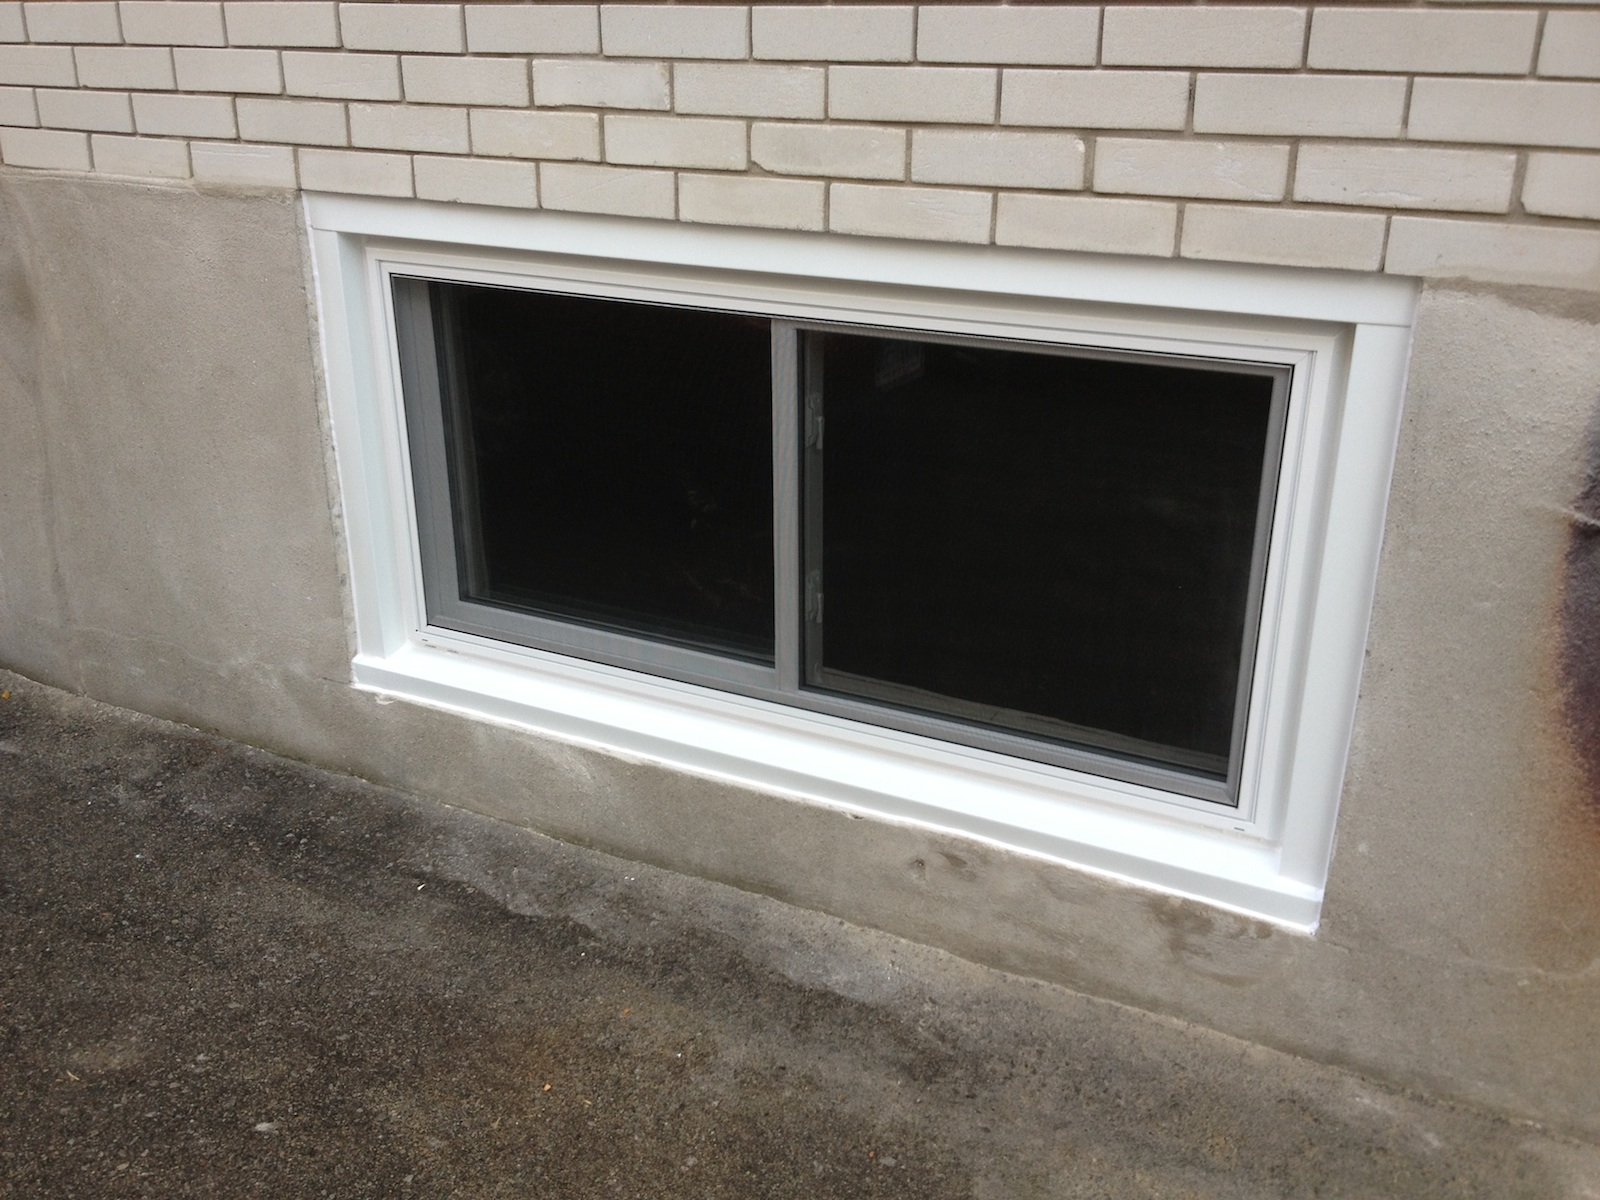 ... window replacement in the basement. basement_windows_nj.jpg & Guide to Basement Window Replacement